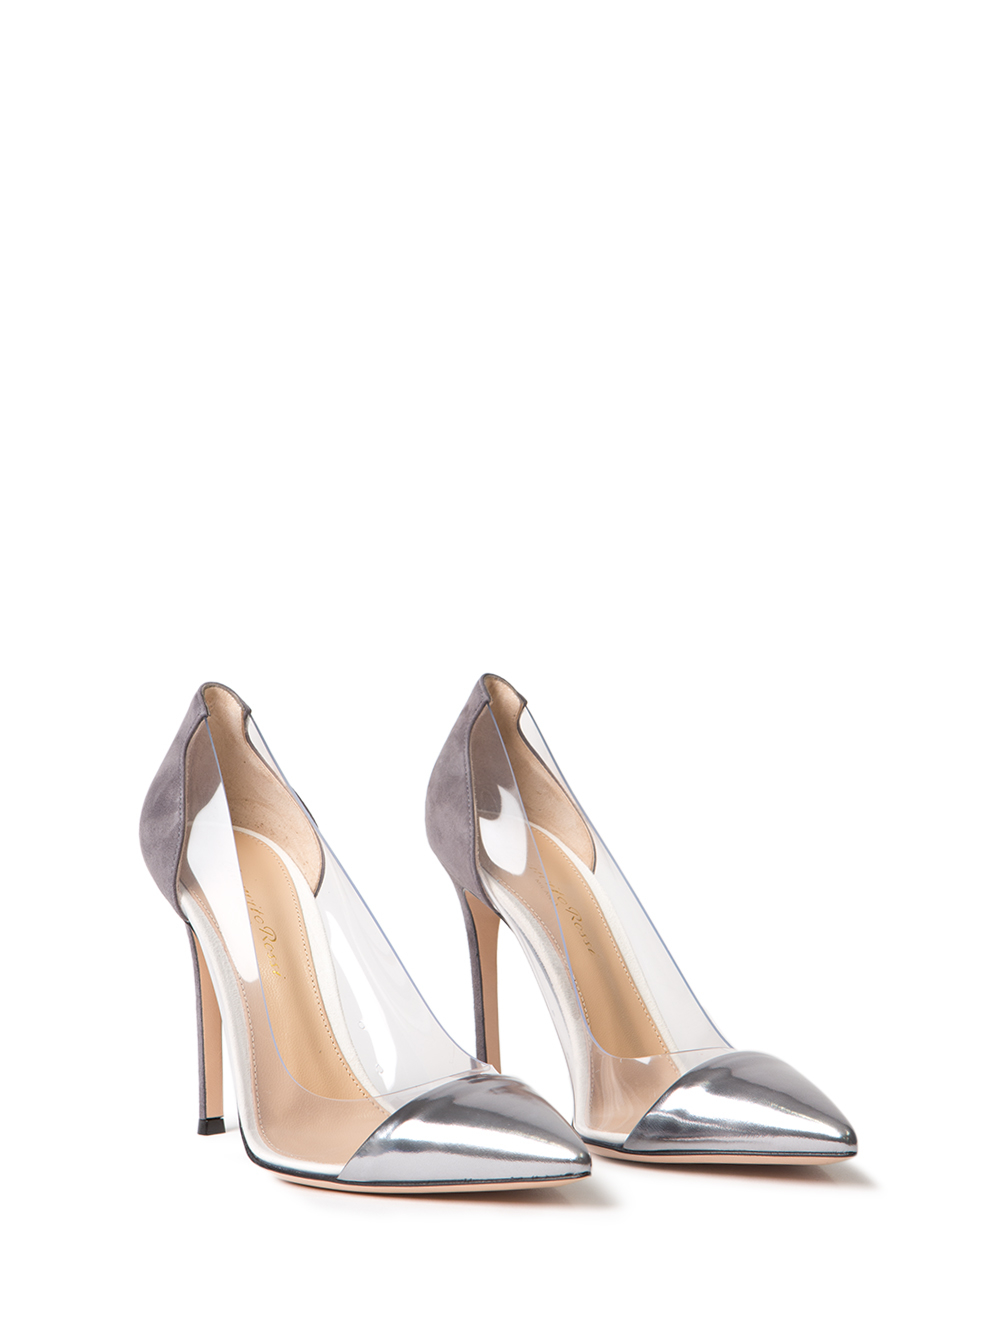 5a20068a0f0 Lyst - Gianvito Rossi Plexi Metallic Leather and Suede Pumps in Metallic